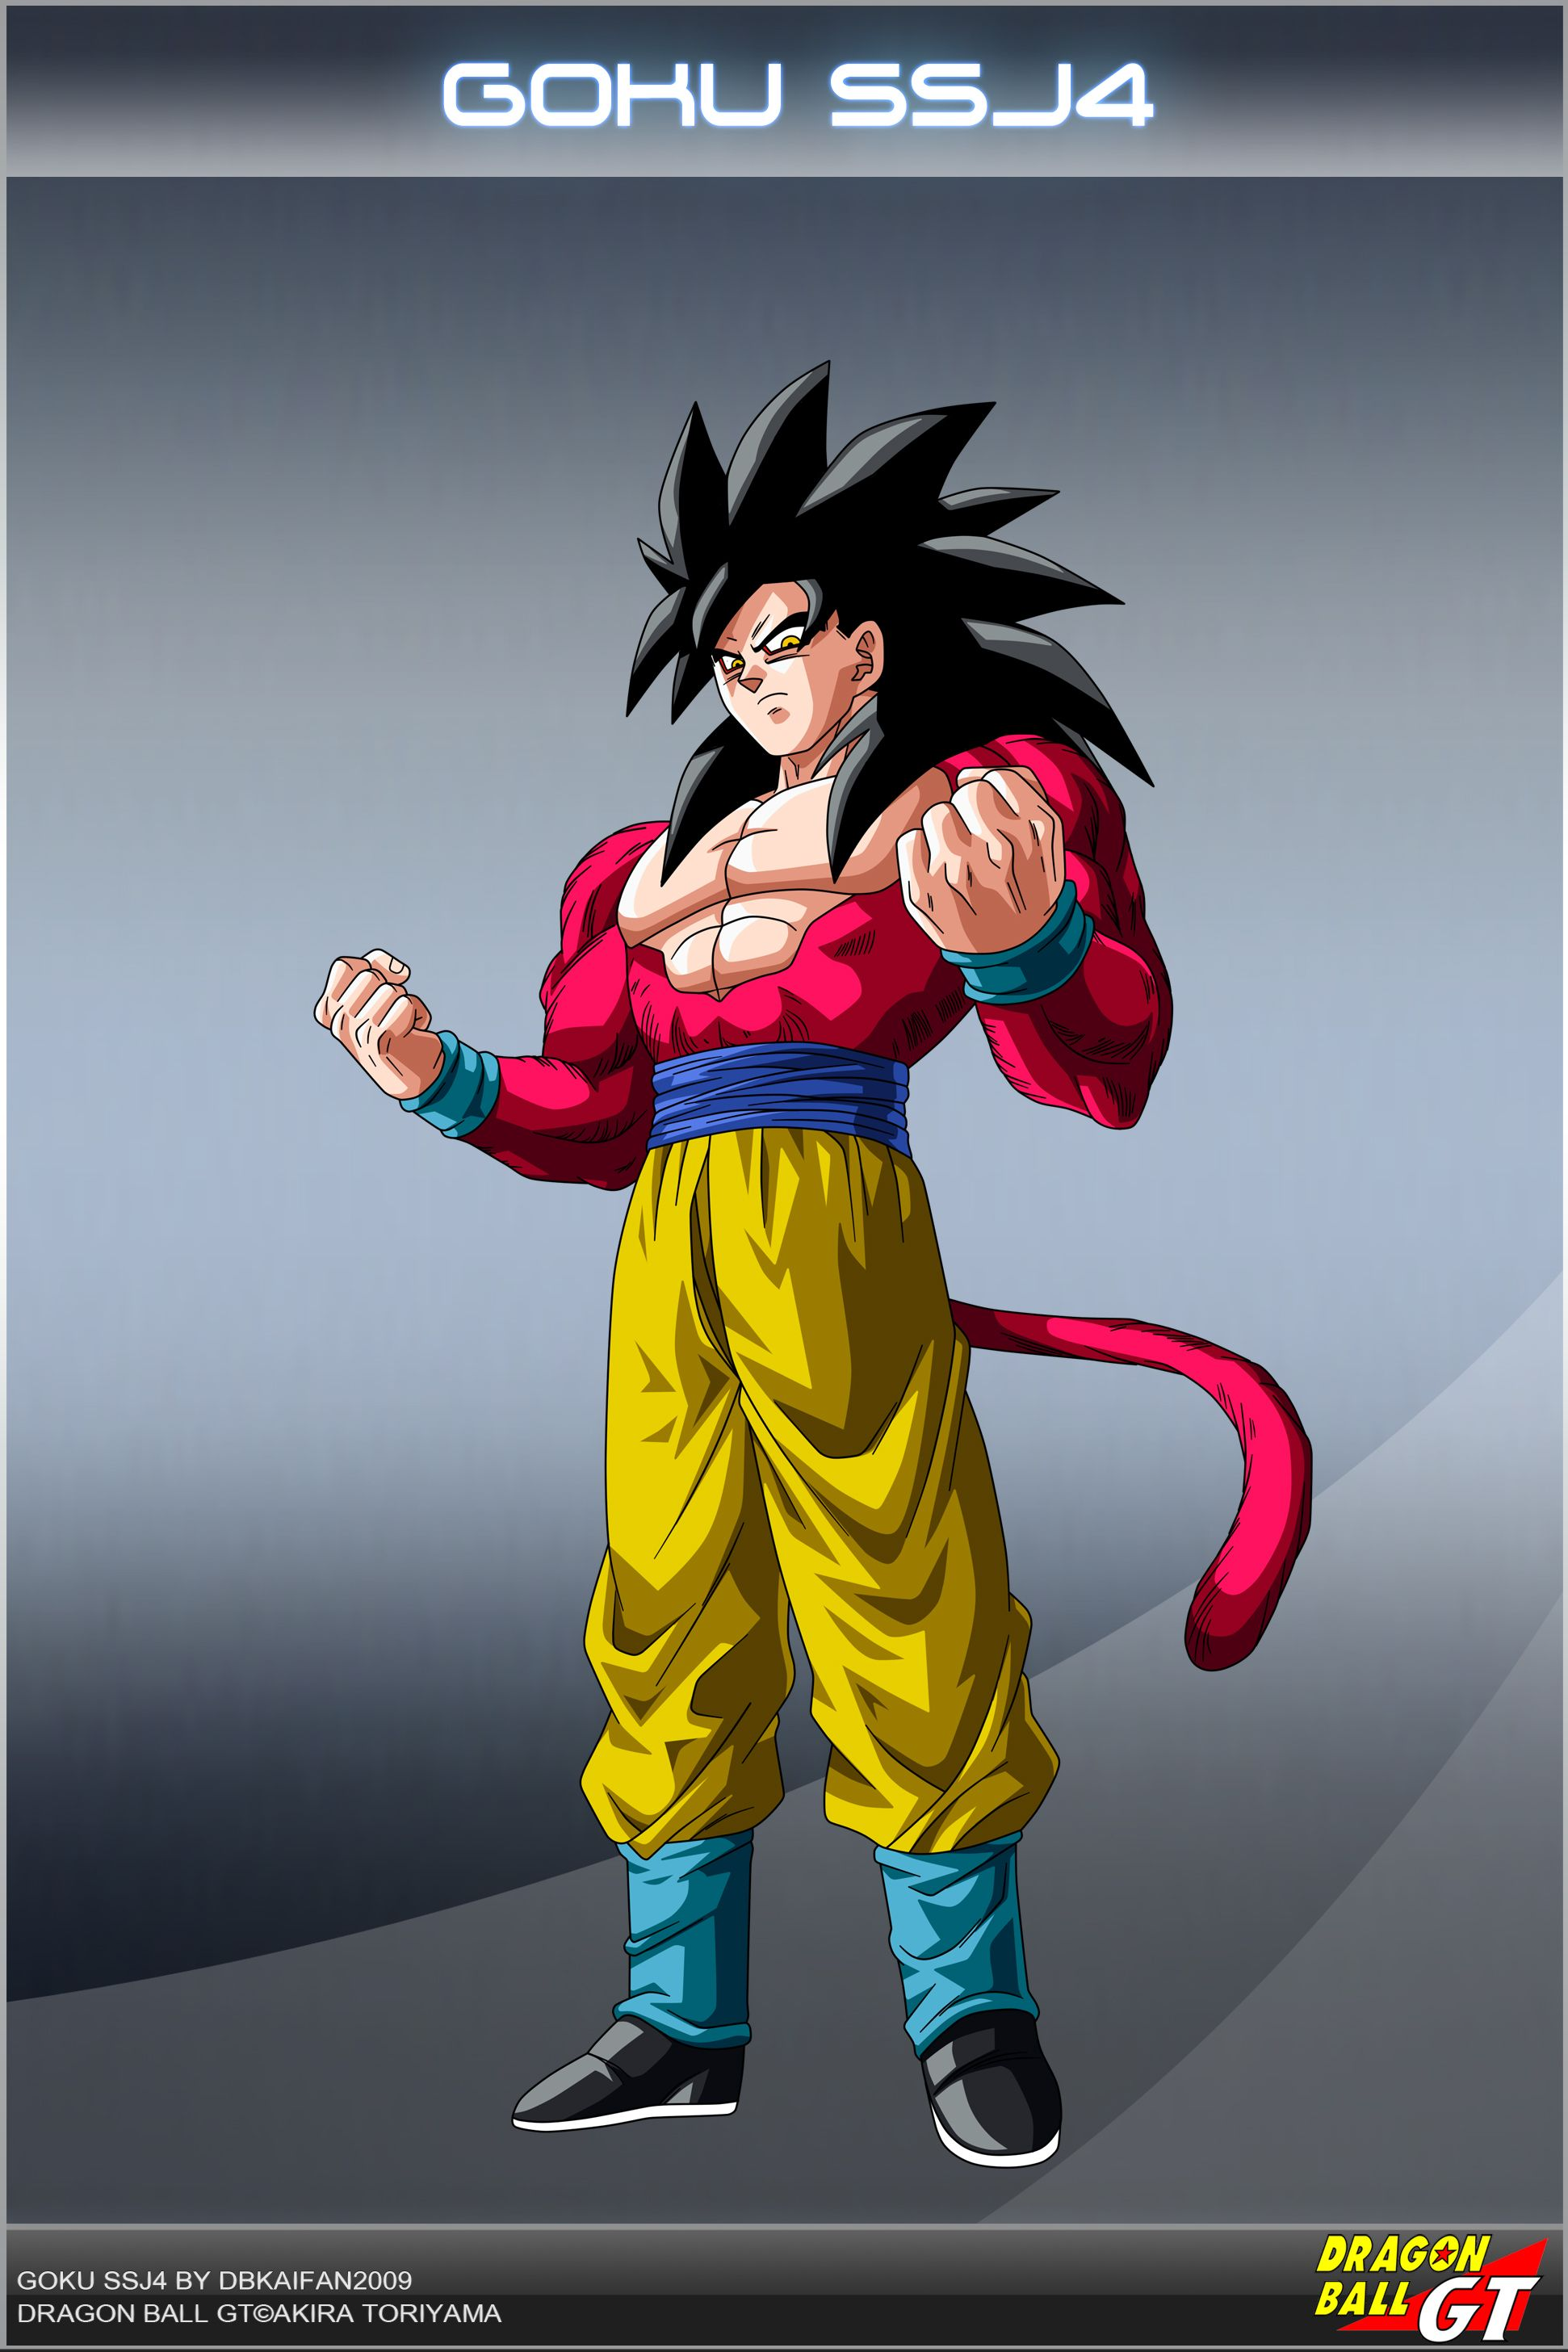 dragon ball gt goku ssj4 os by dbcproject on deviantart dragon